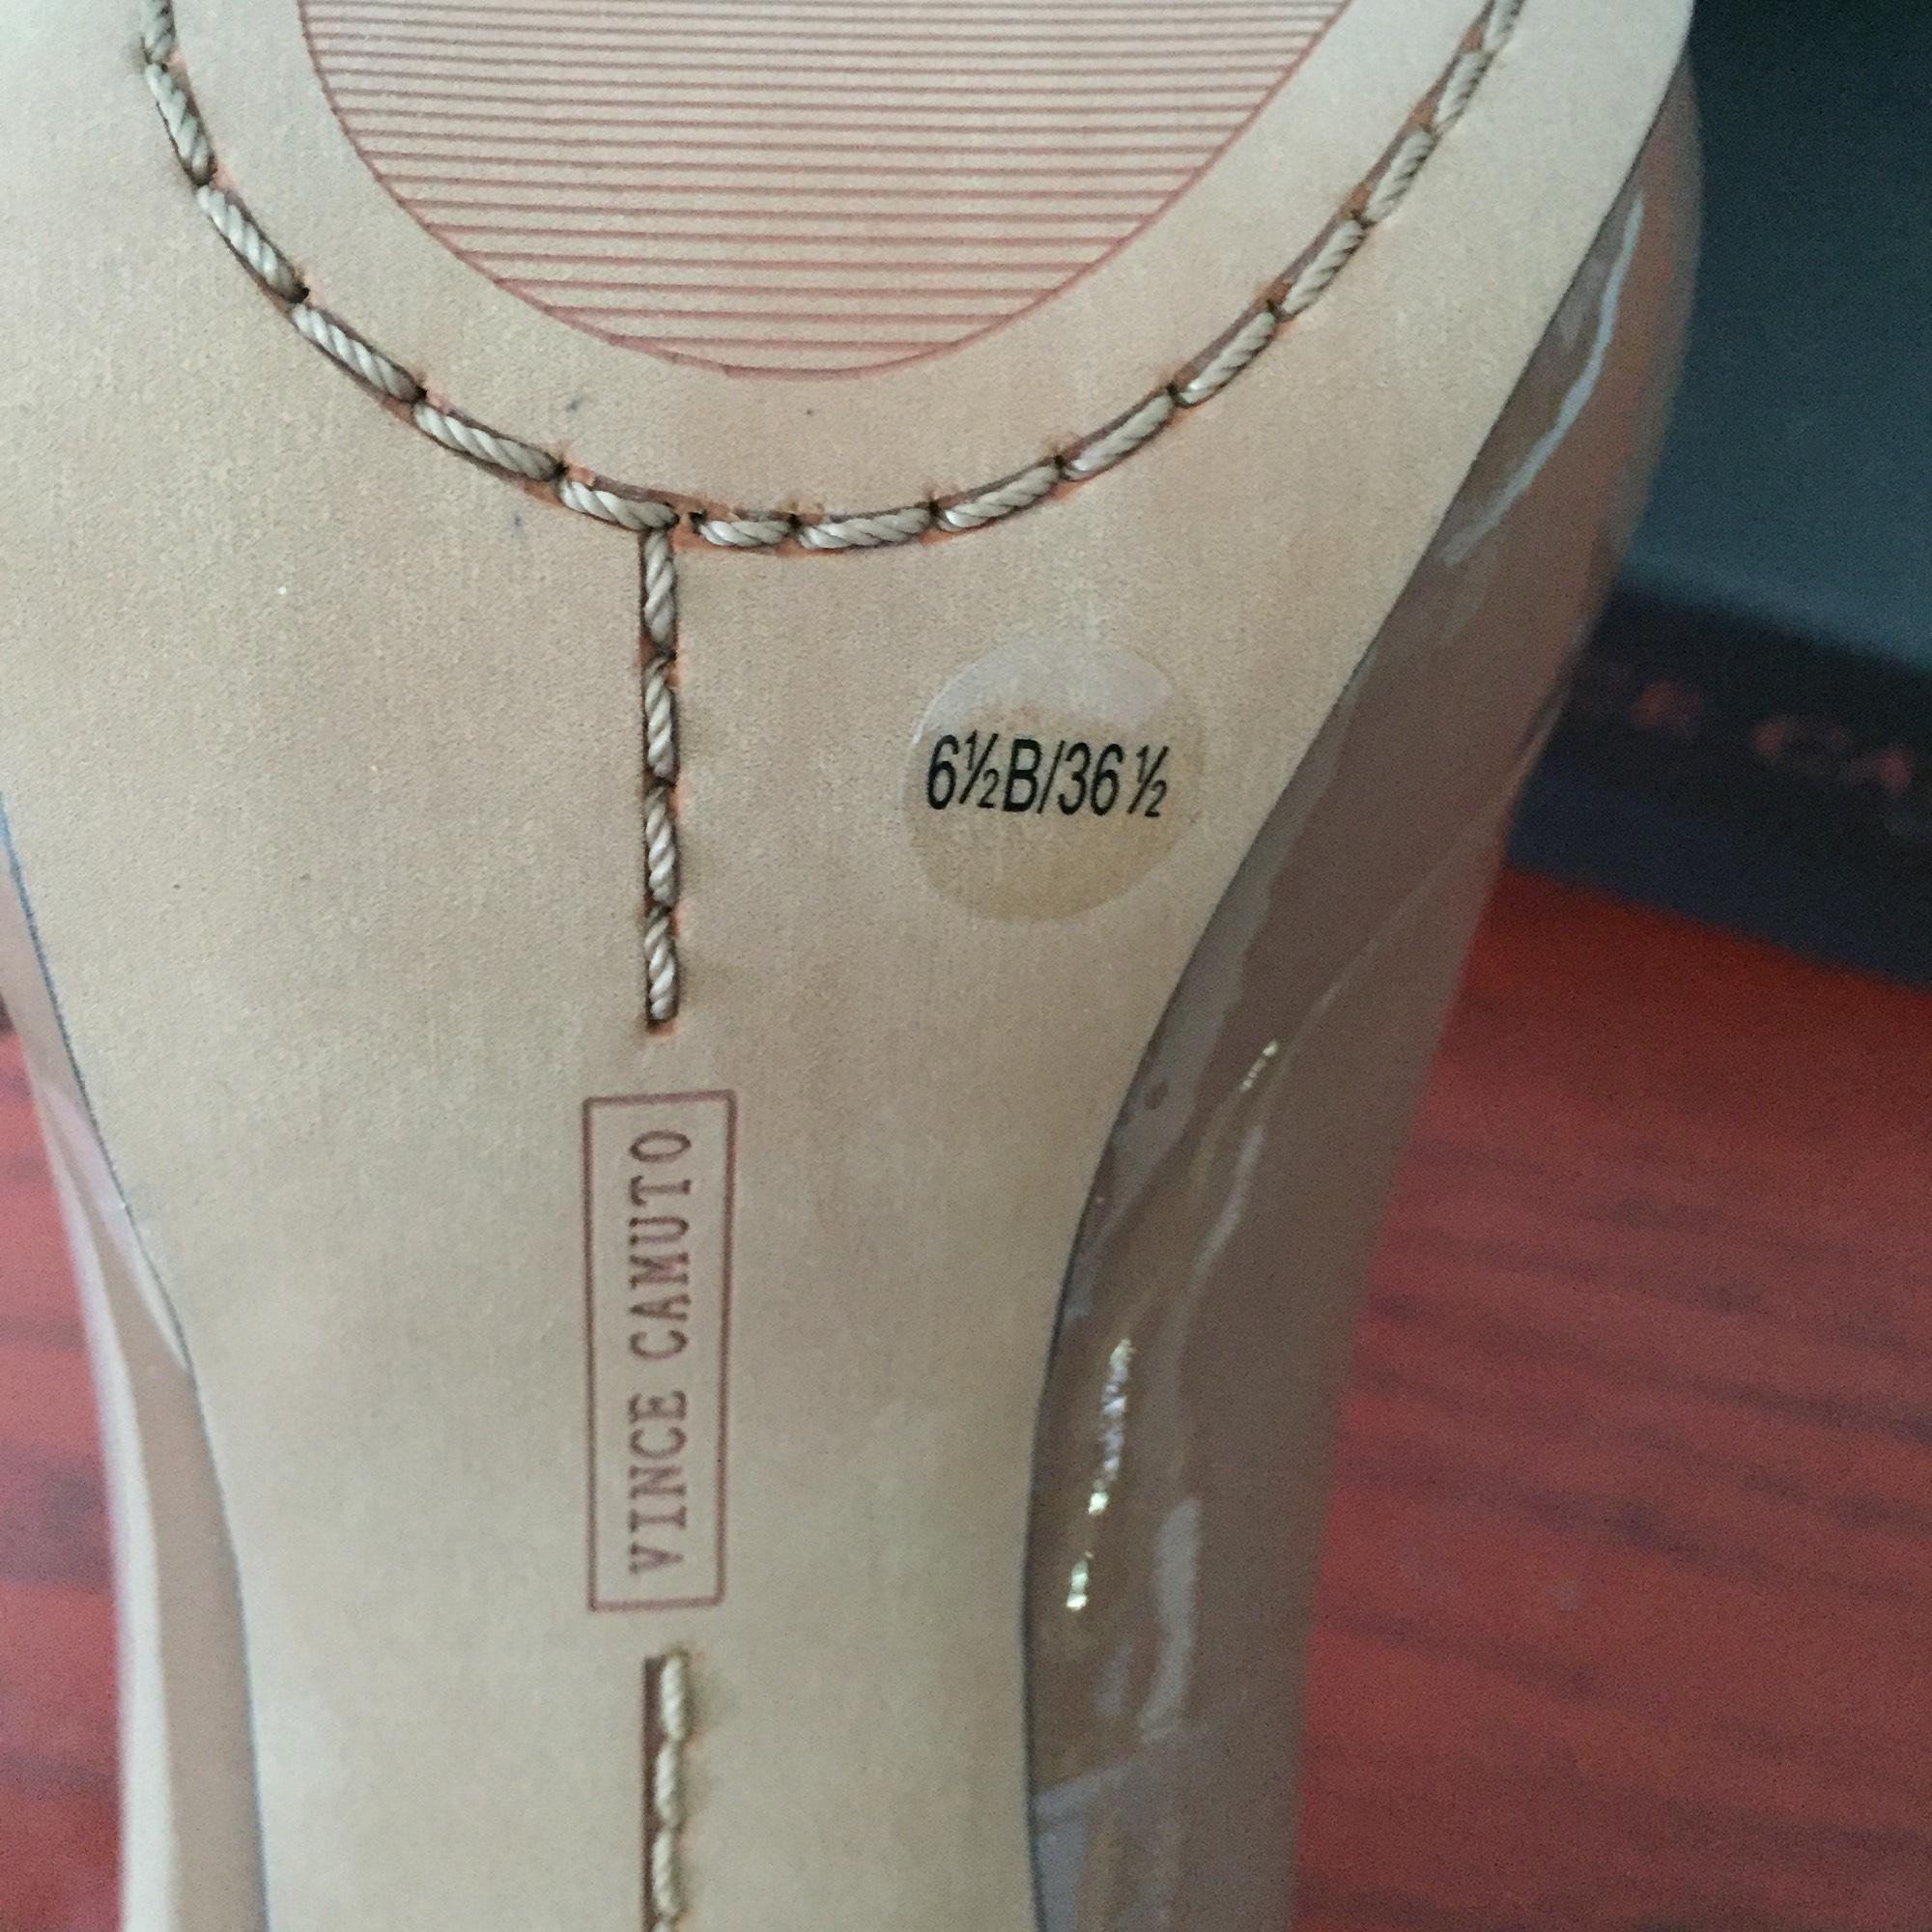 vince camuto nu plates ordinaires - formes ordinaires plates (taille mayna nous 6.5 m, b) 3e4f9b